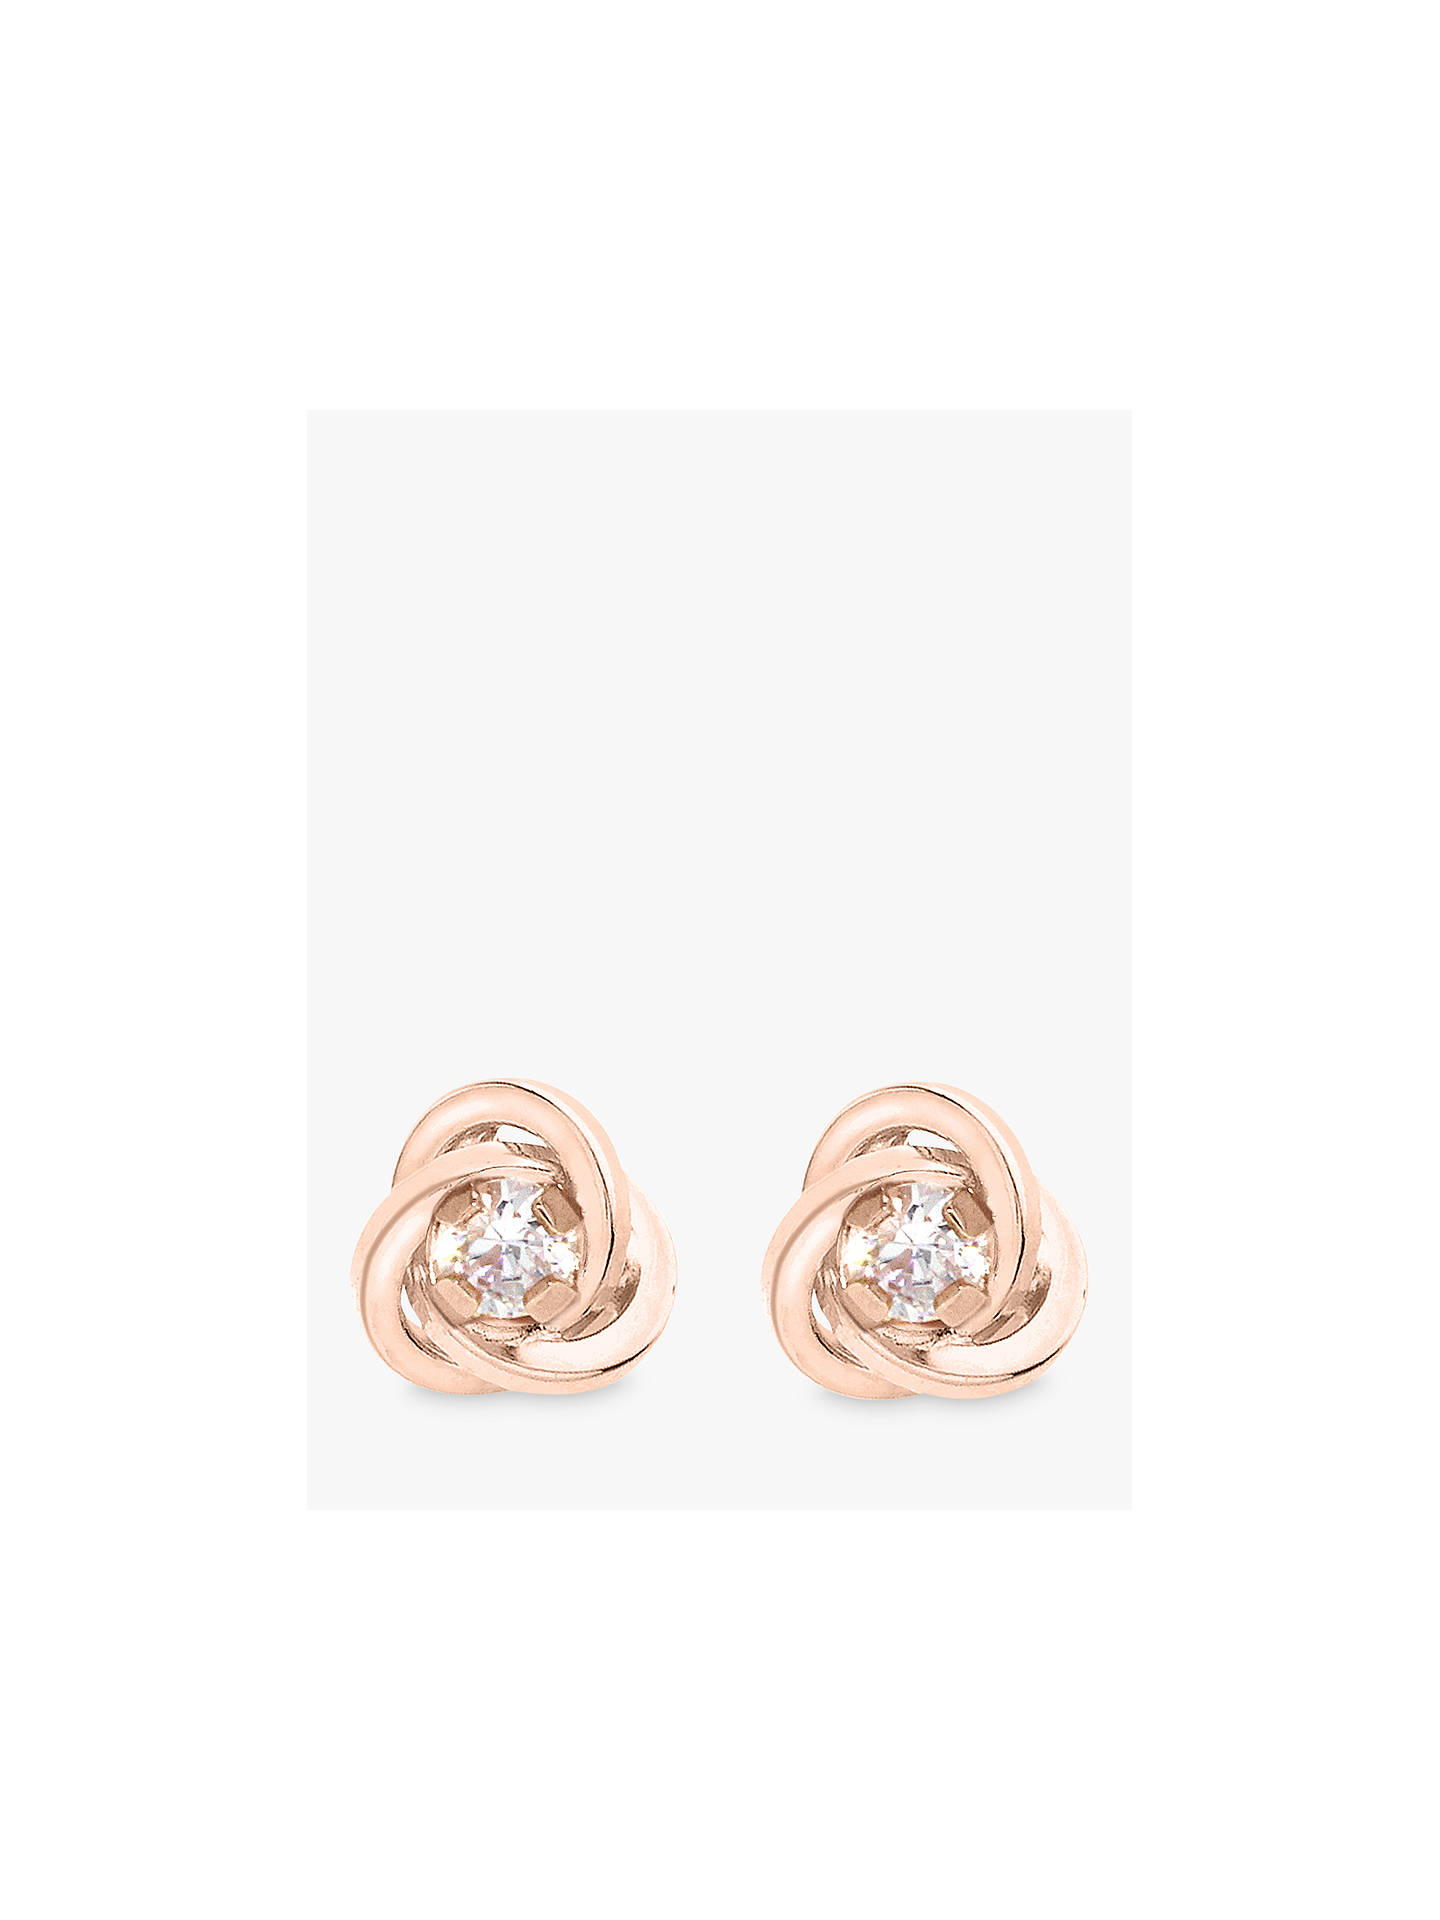 39a25e39c Buy IBB 9ct Gold Knot Stud Earrings, Rose Gold Online at johnlewis.com ...